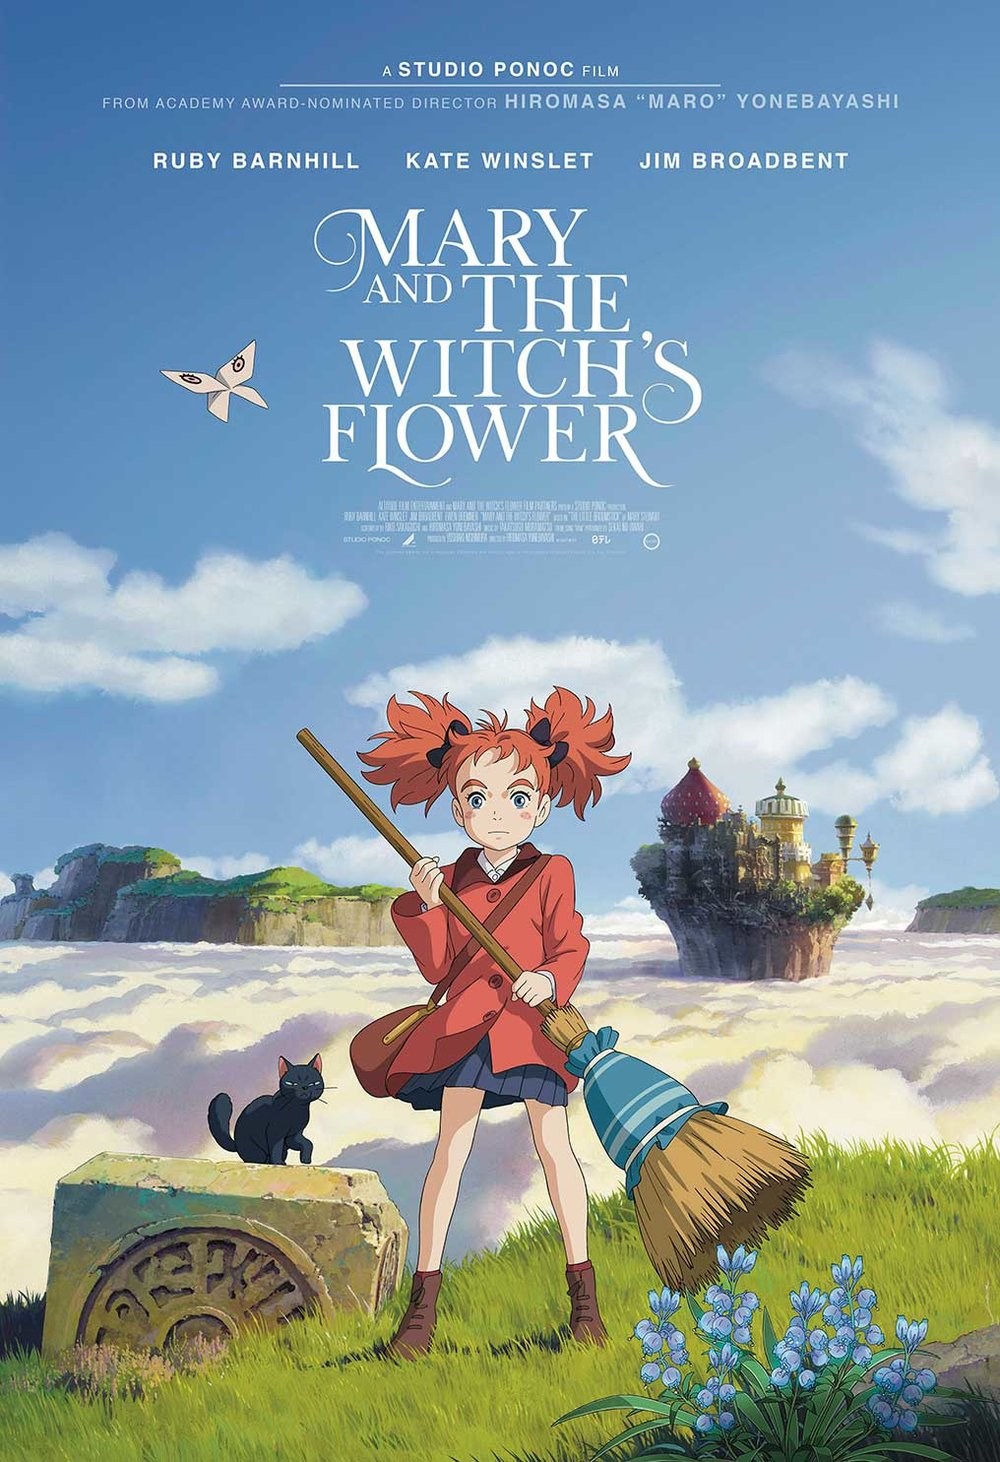 Take home Mary And The Witch's Flower! - AVAILABLE MAY 1ON BLU-RAY, DVD & DIGITAL